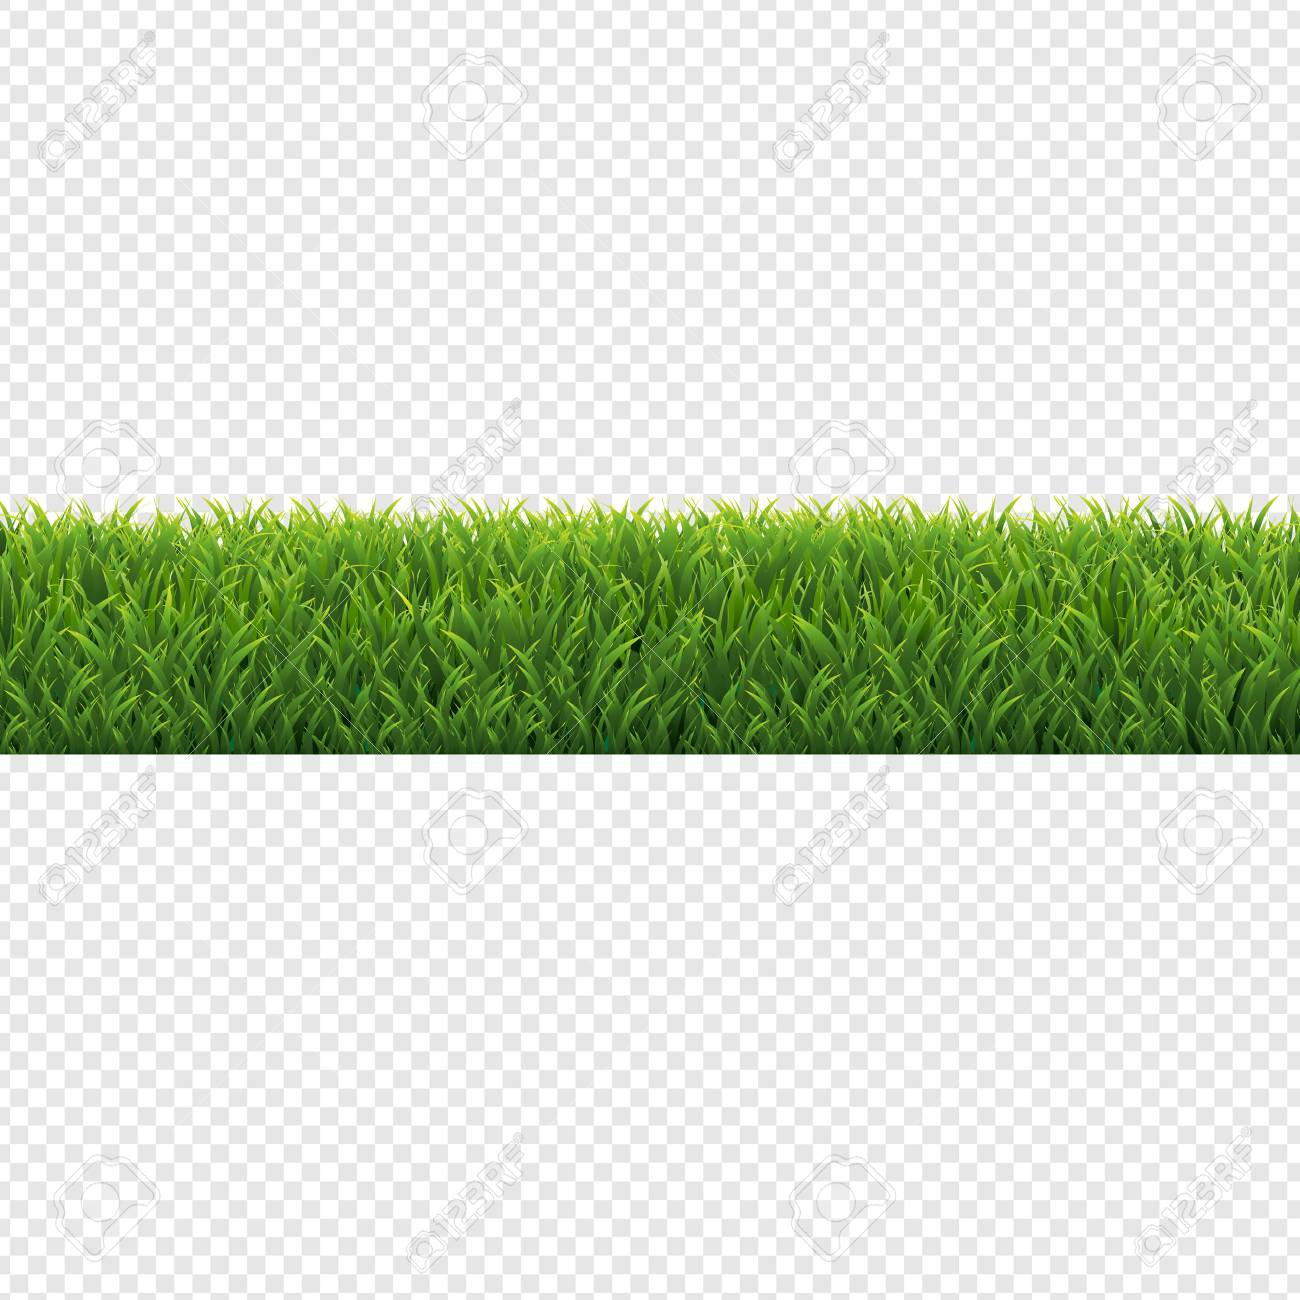 grass border no background summer green grass border transparent background vector illustration stock 108090842